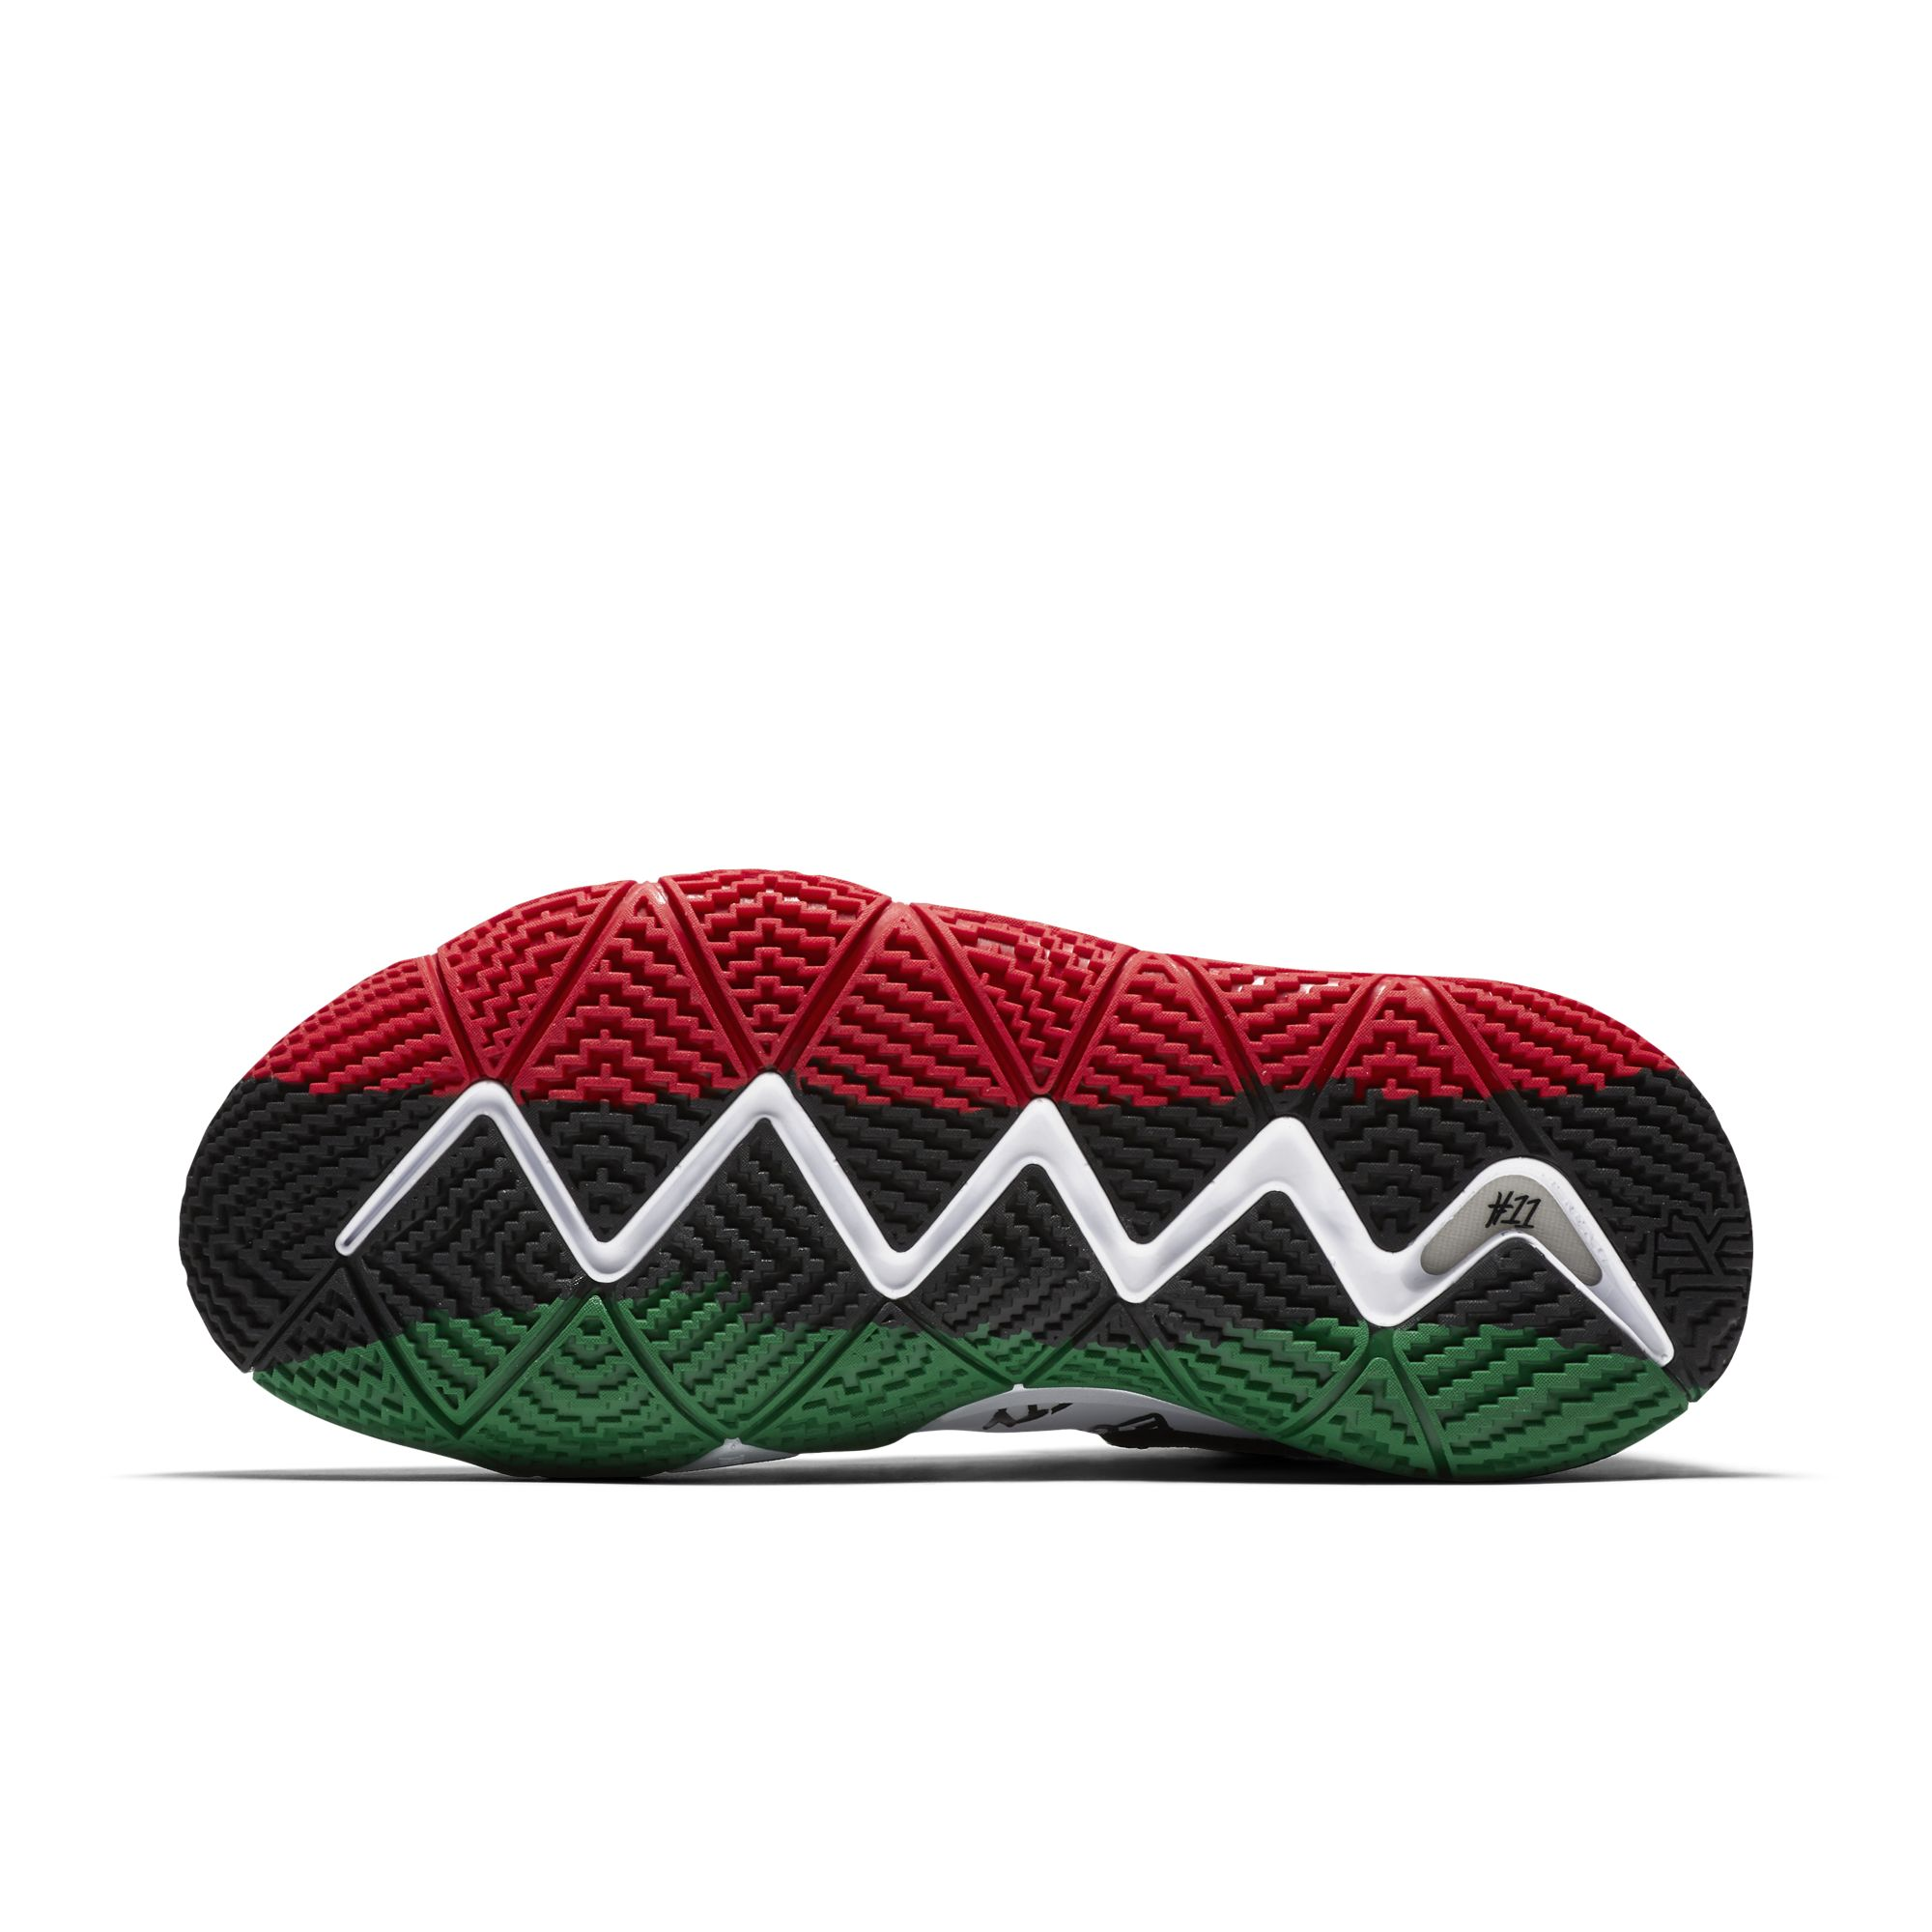 3c55b0dbc3a5 nike kyrie 4 bhm official 2 - WearTesters